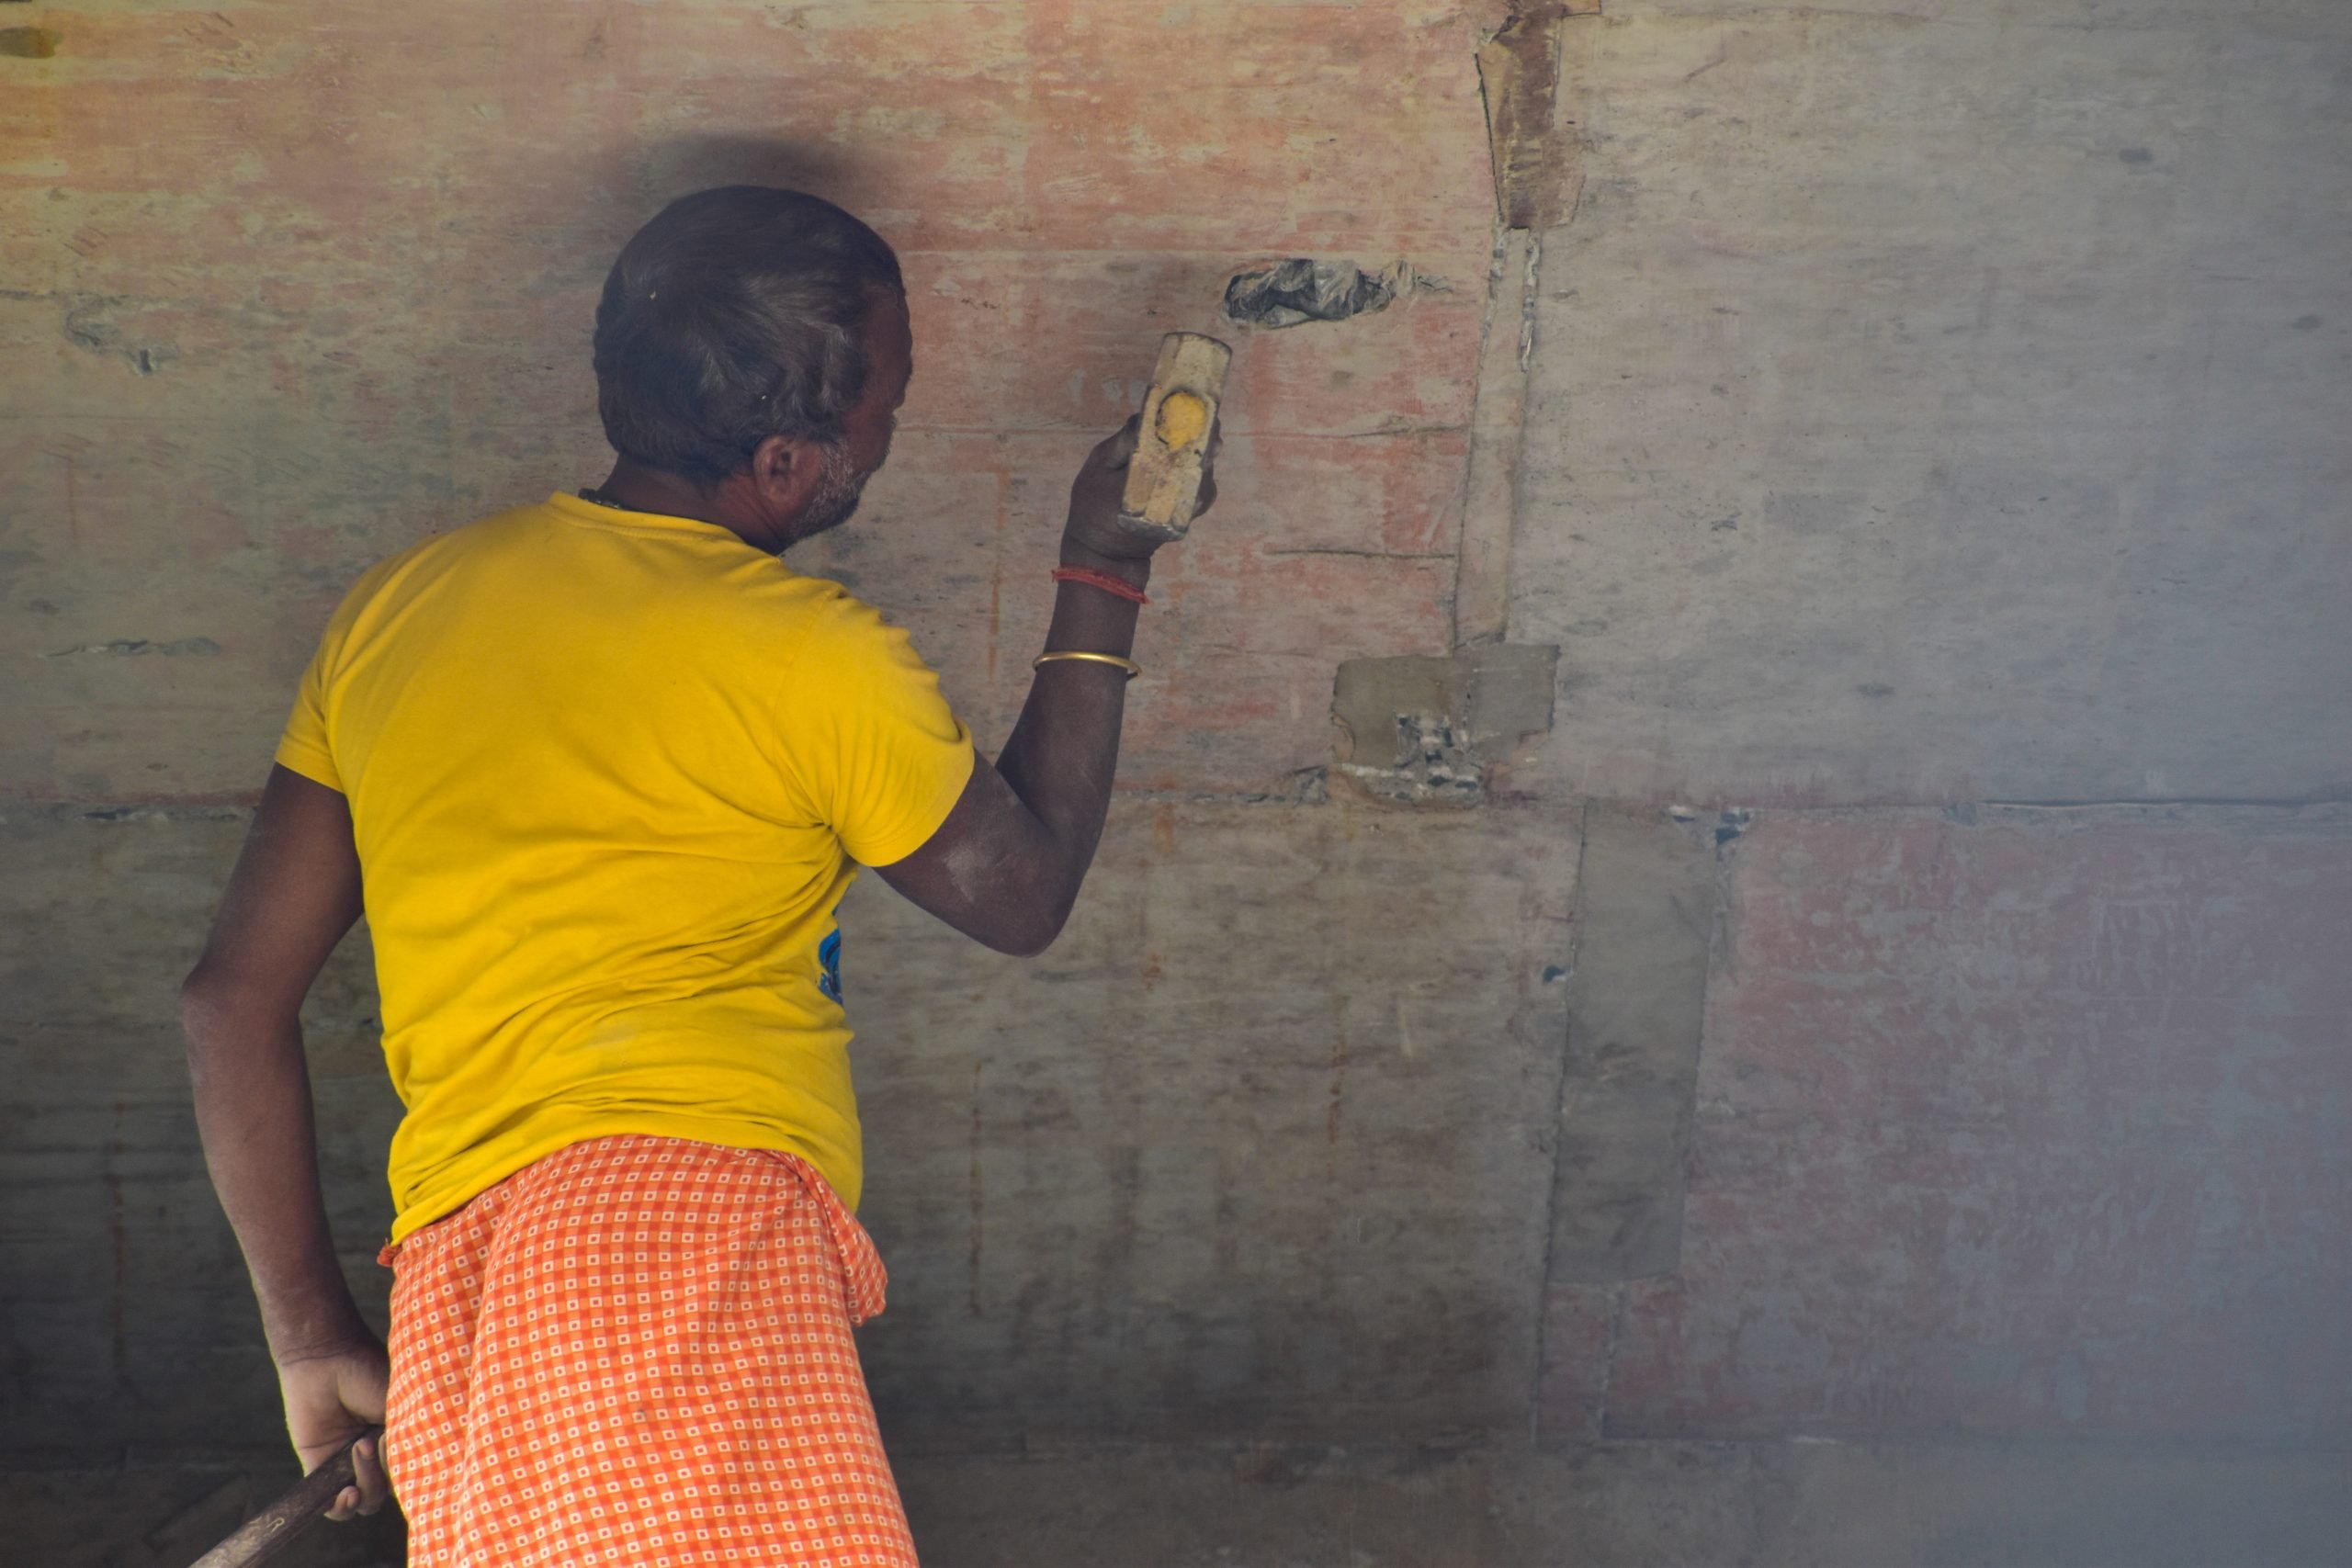 A man hammering on a wall